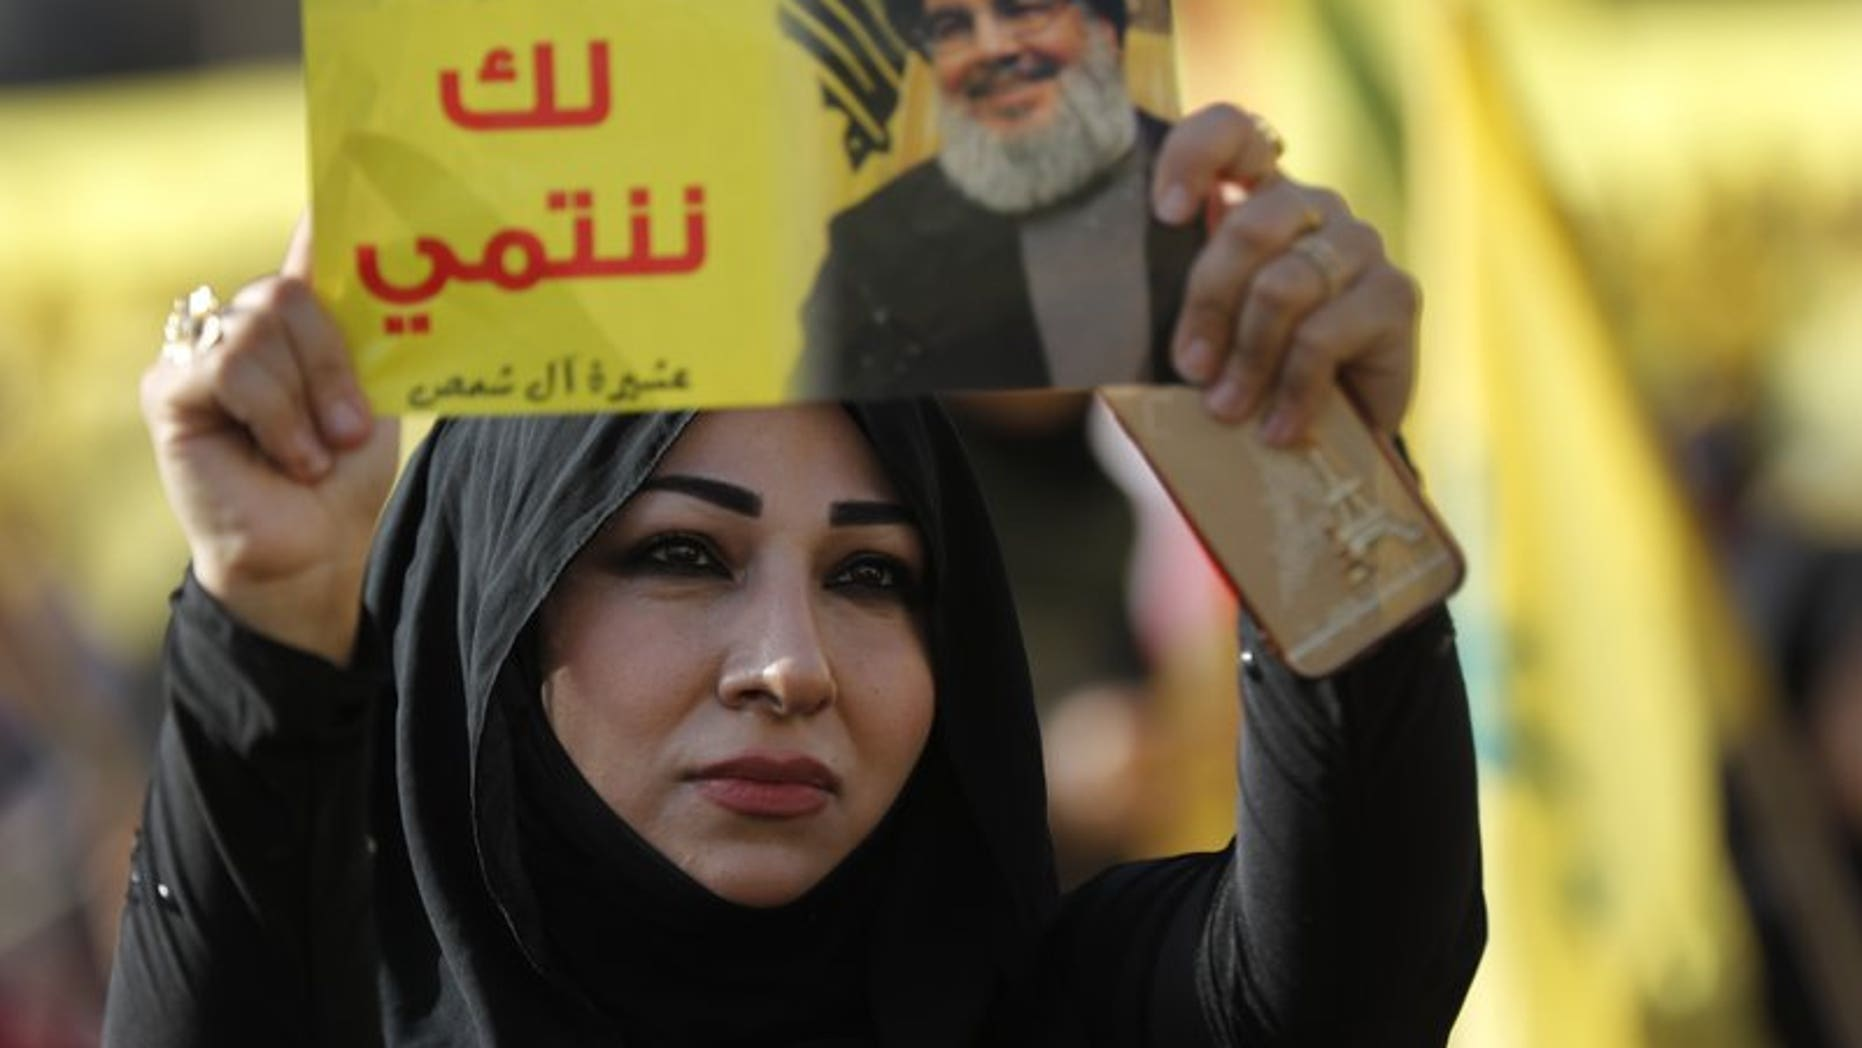 """In this April 13, 2018, file photo, a supporter of Hezbollah leader Sayyed Hassan Nasrallah holds up his portrait with Arabic words that read: """"We belong with you,"""" during an election campaign speech in a southern suburb of Beirut, Lebanon."""